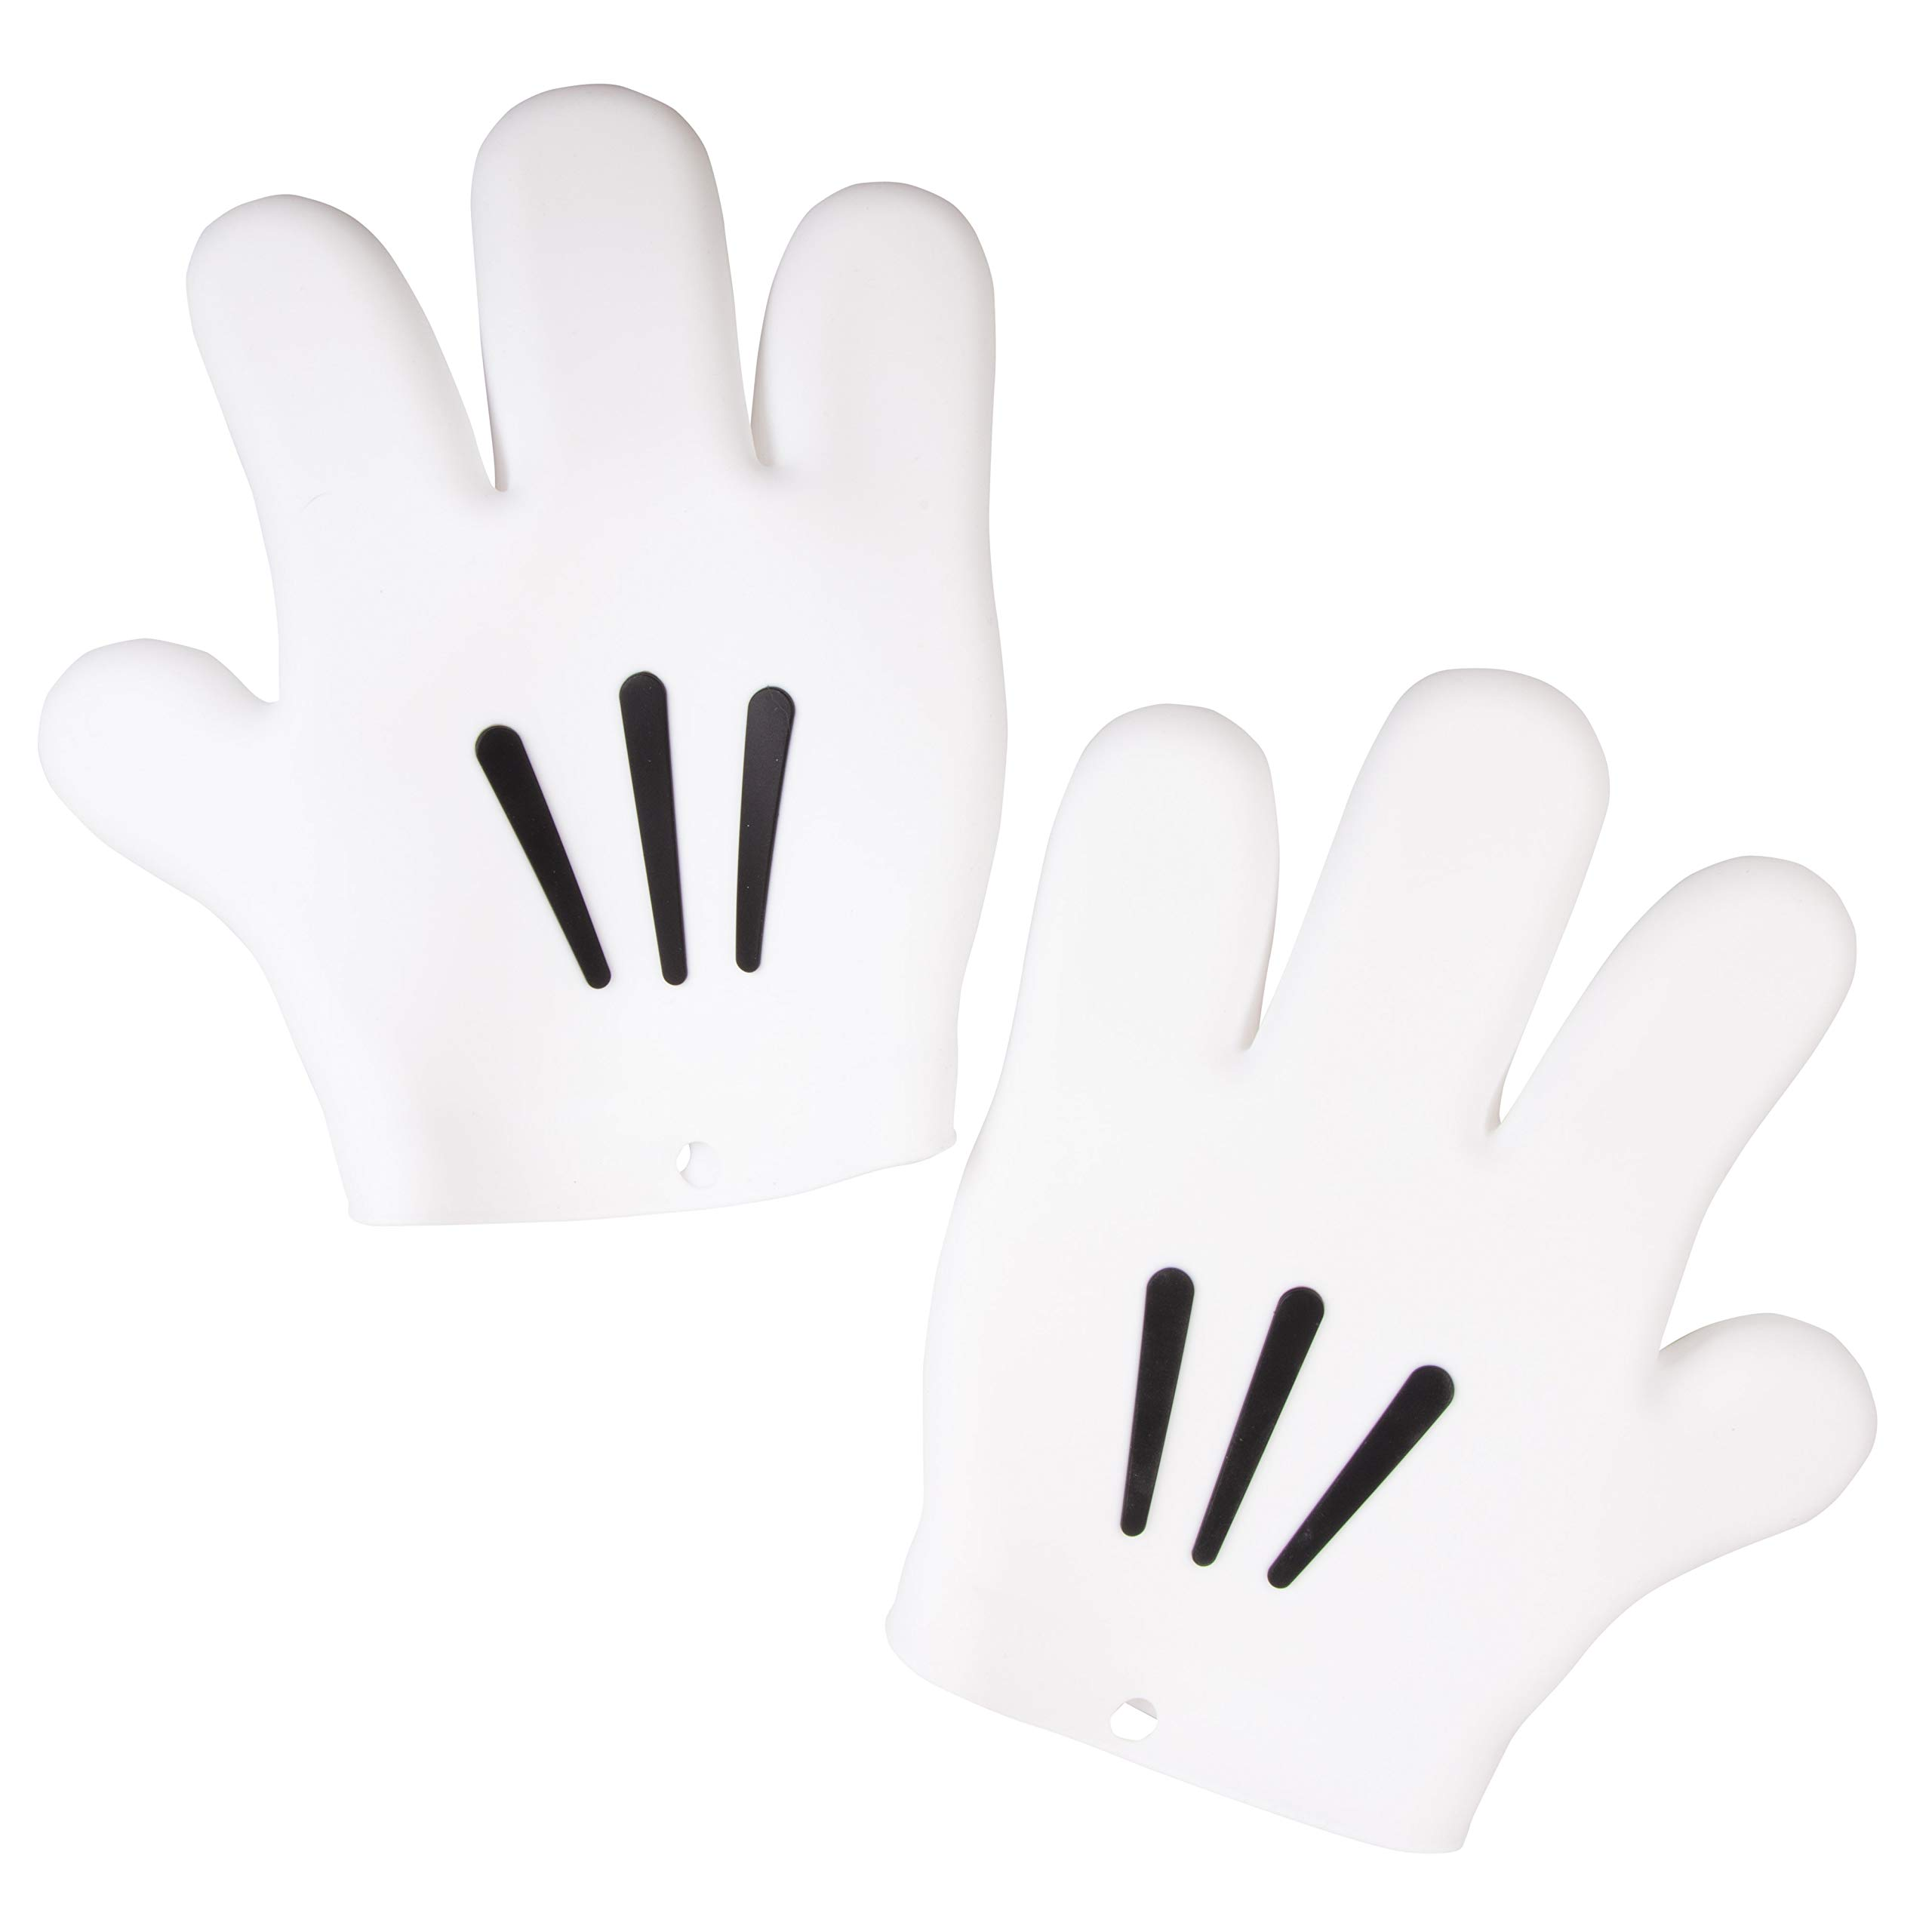 Disney Mickey Mouse Hand Oven Glove Set - Silicone - Heat-Resistant, Food Safe - Right and Left Hand Pair by Seven20